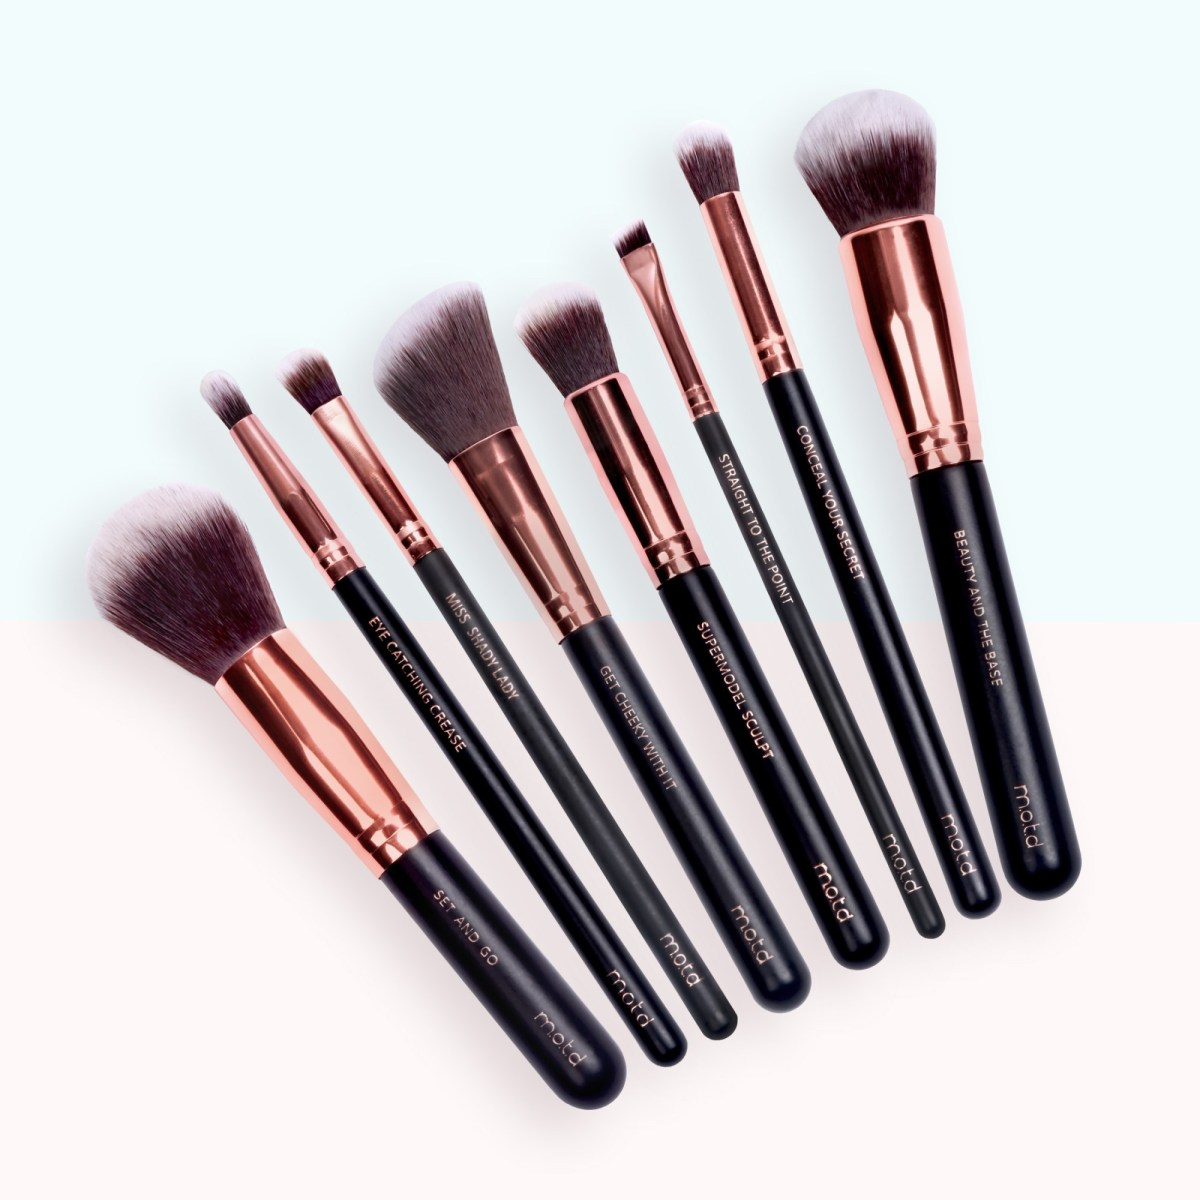 Lux Vegan Makeup Brush Essentials MOTD Cosmetics Vegan Makeup Brushes